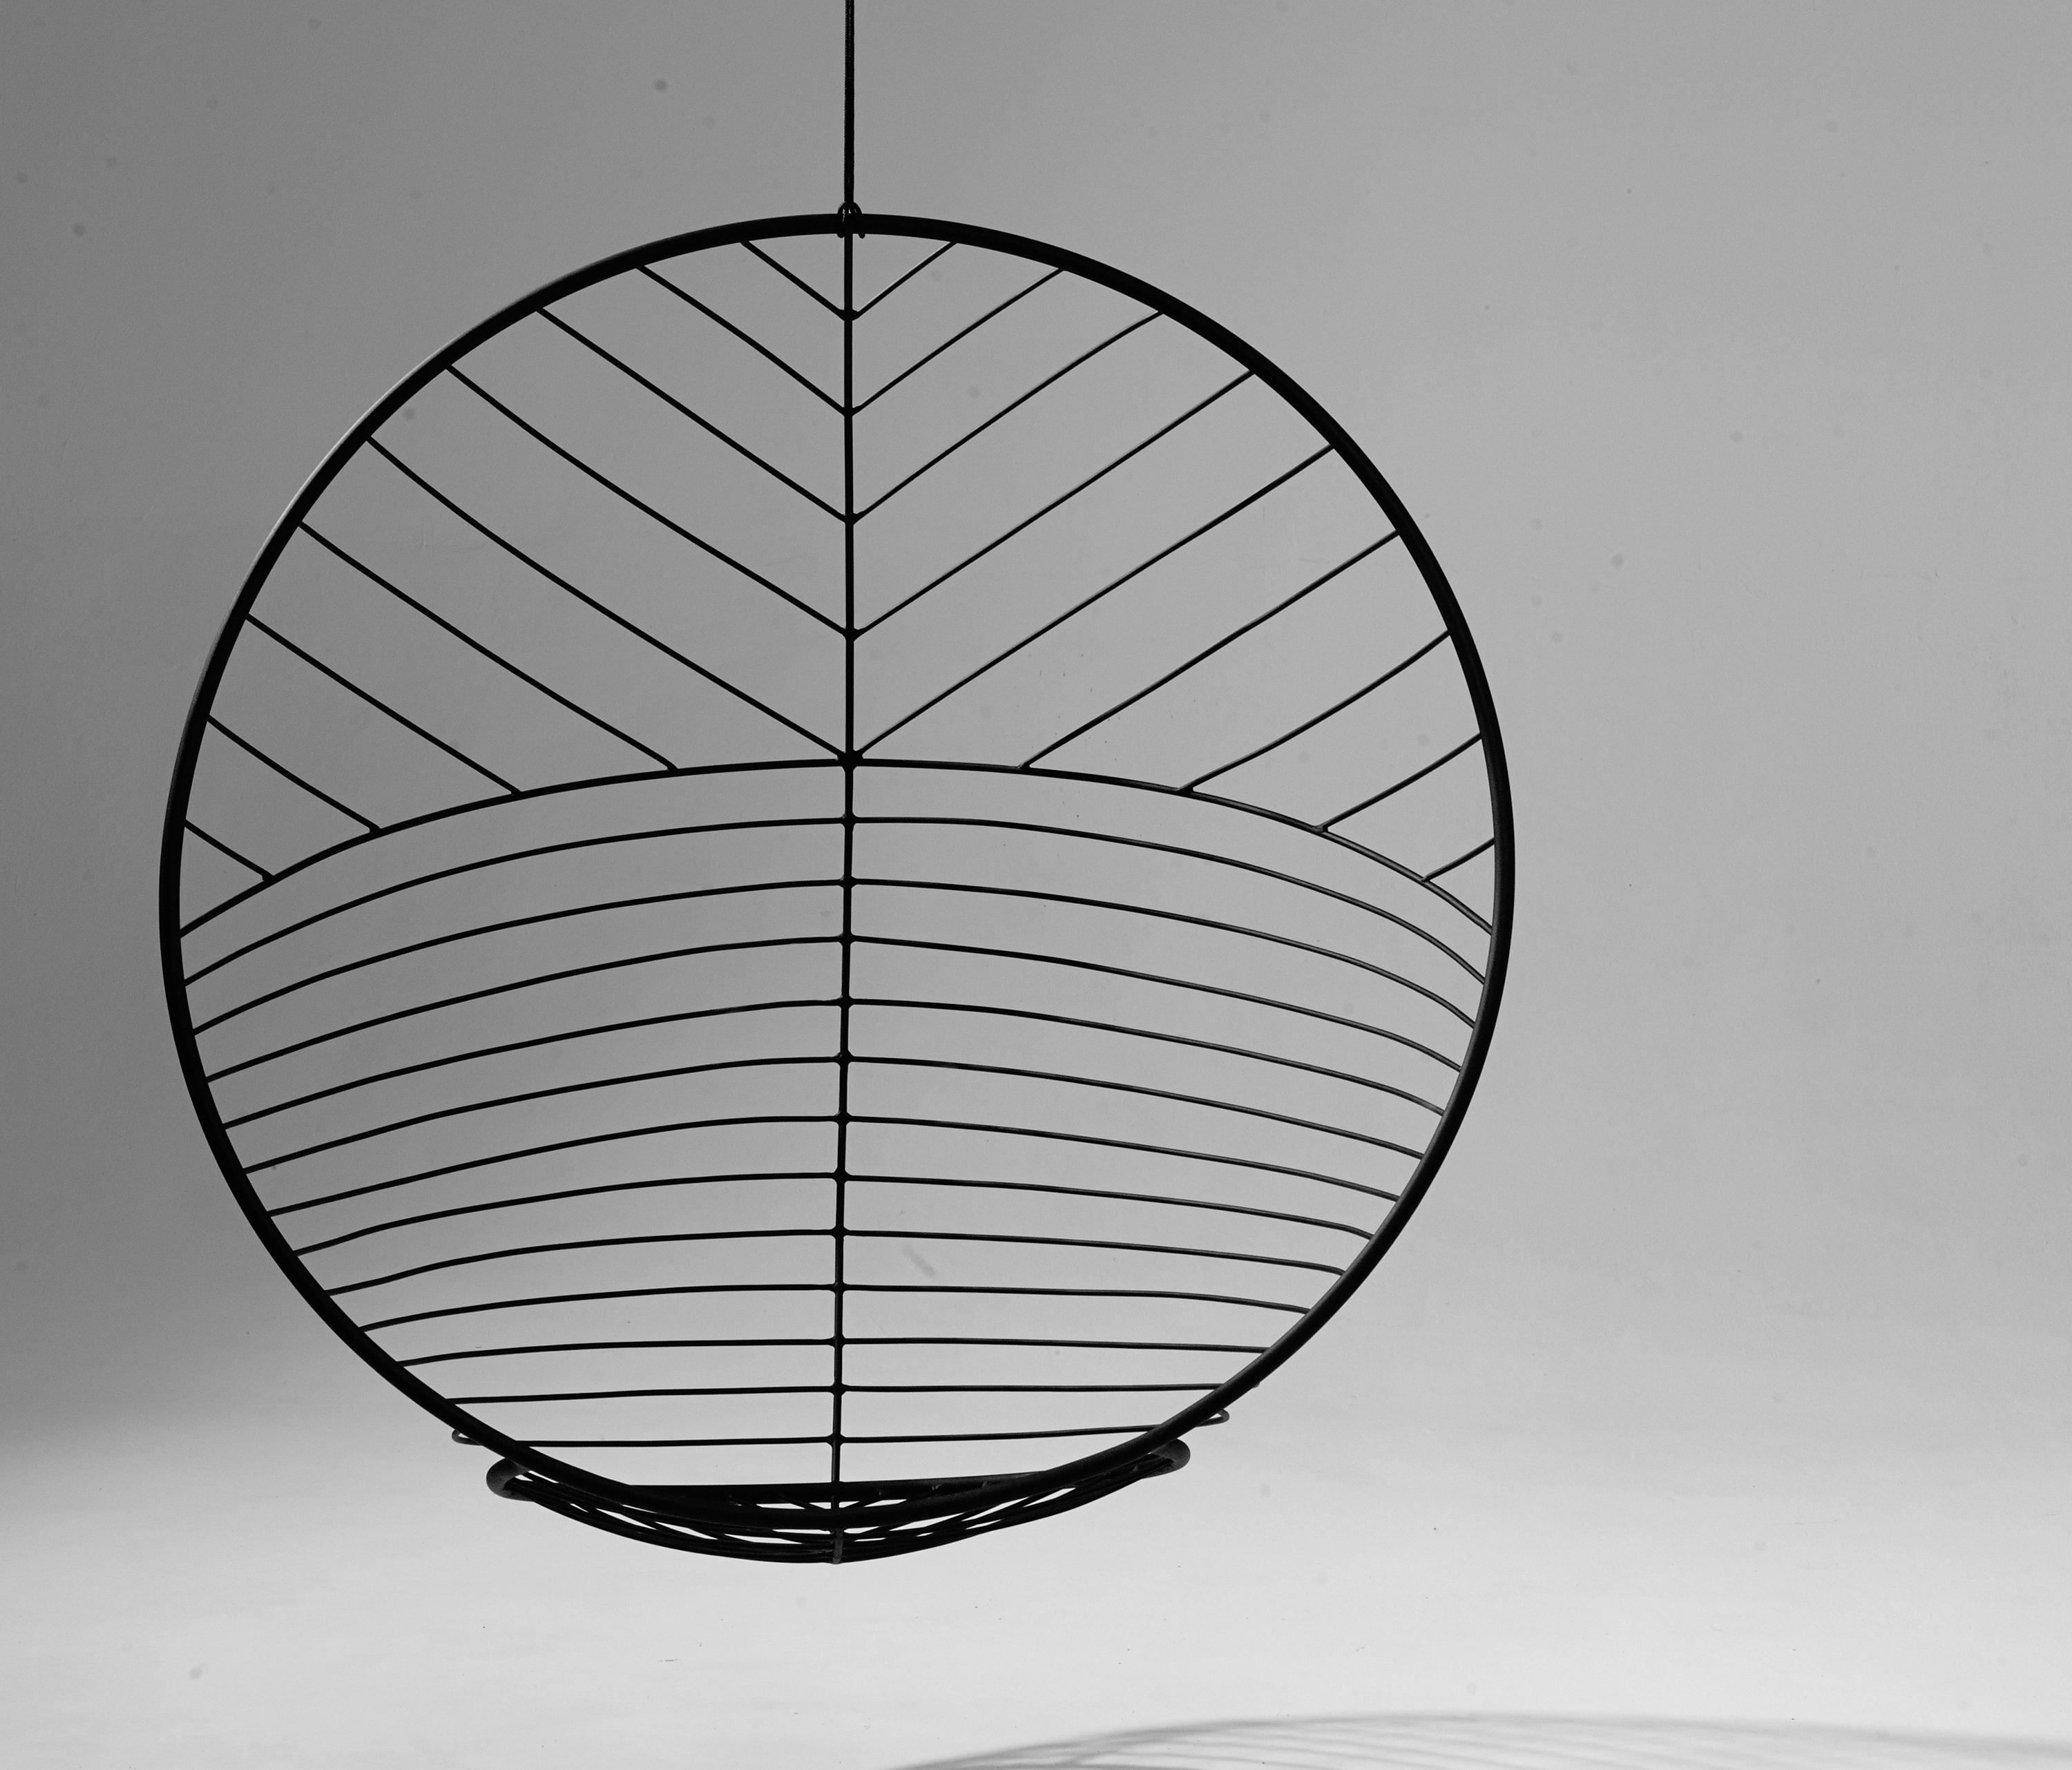 Superieur ... Bubble Circle Hanging Swing Chair By Studio Stirling | Swings